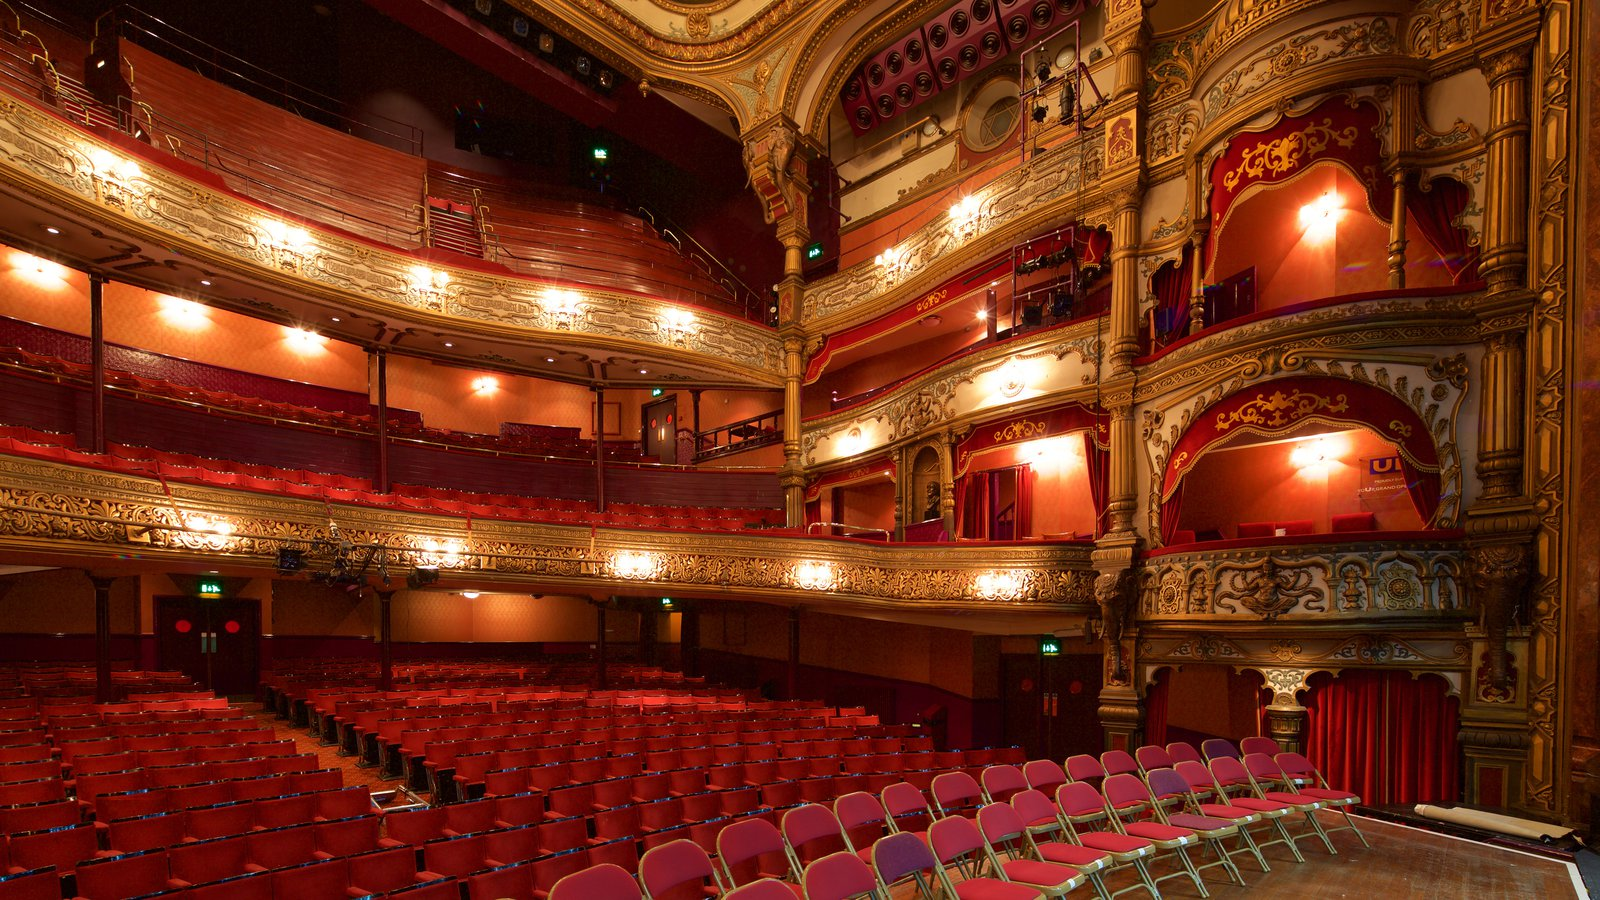 Grand Opera House Belfast, Historical Pictures: View Images of Grand Opera House